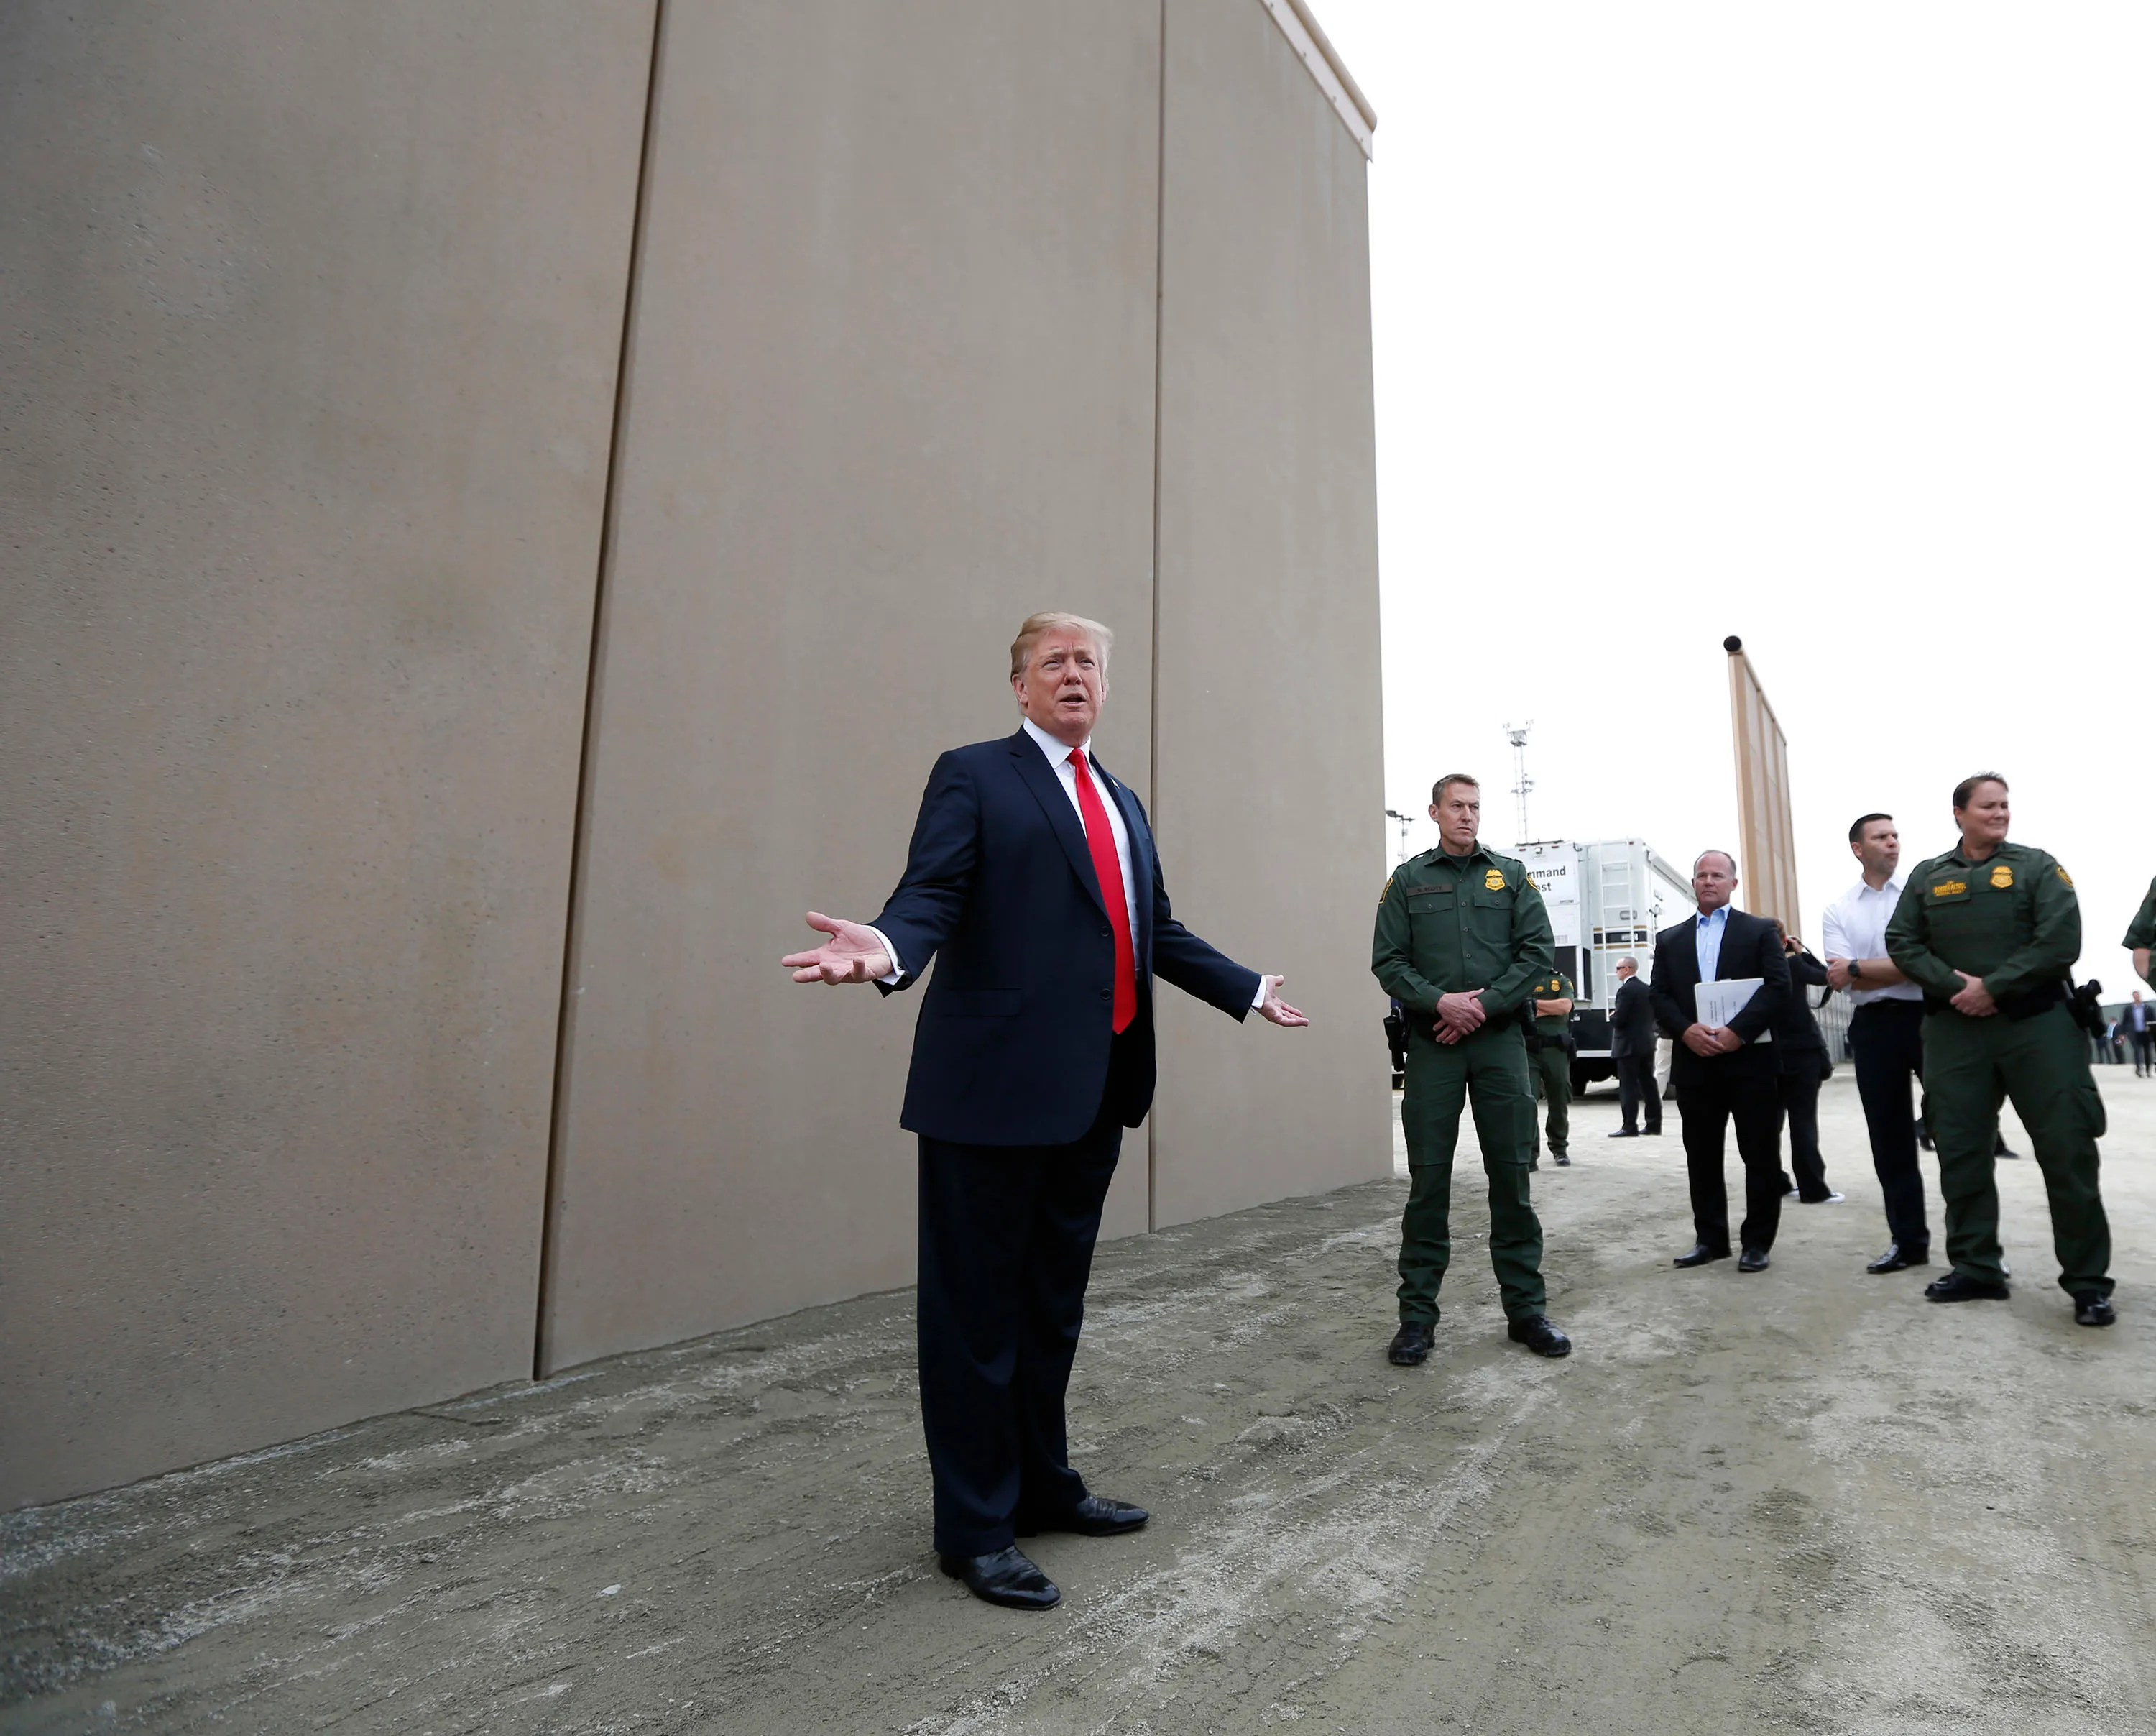 Trump S Border Wall Prototypes To Be Removed